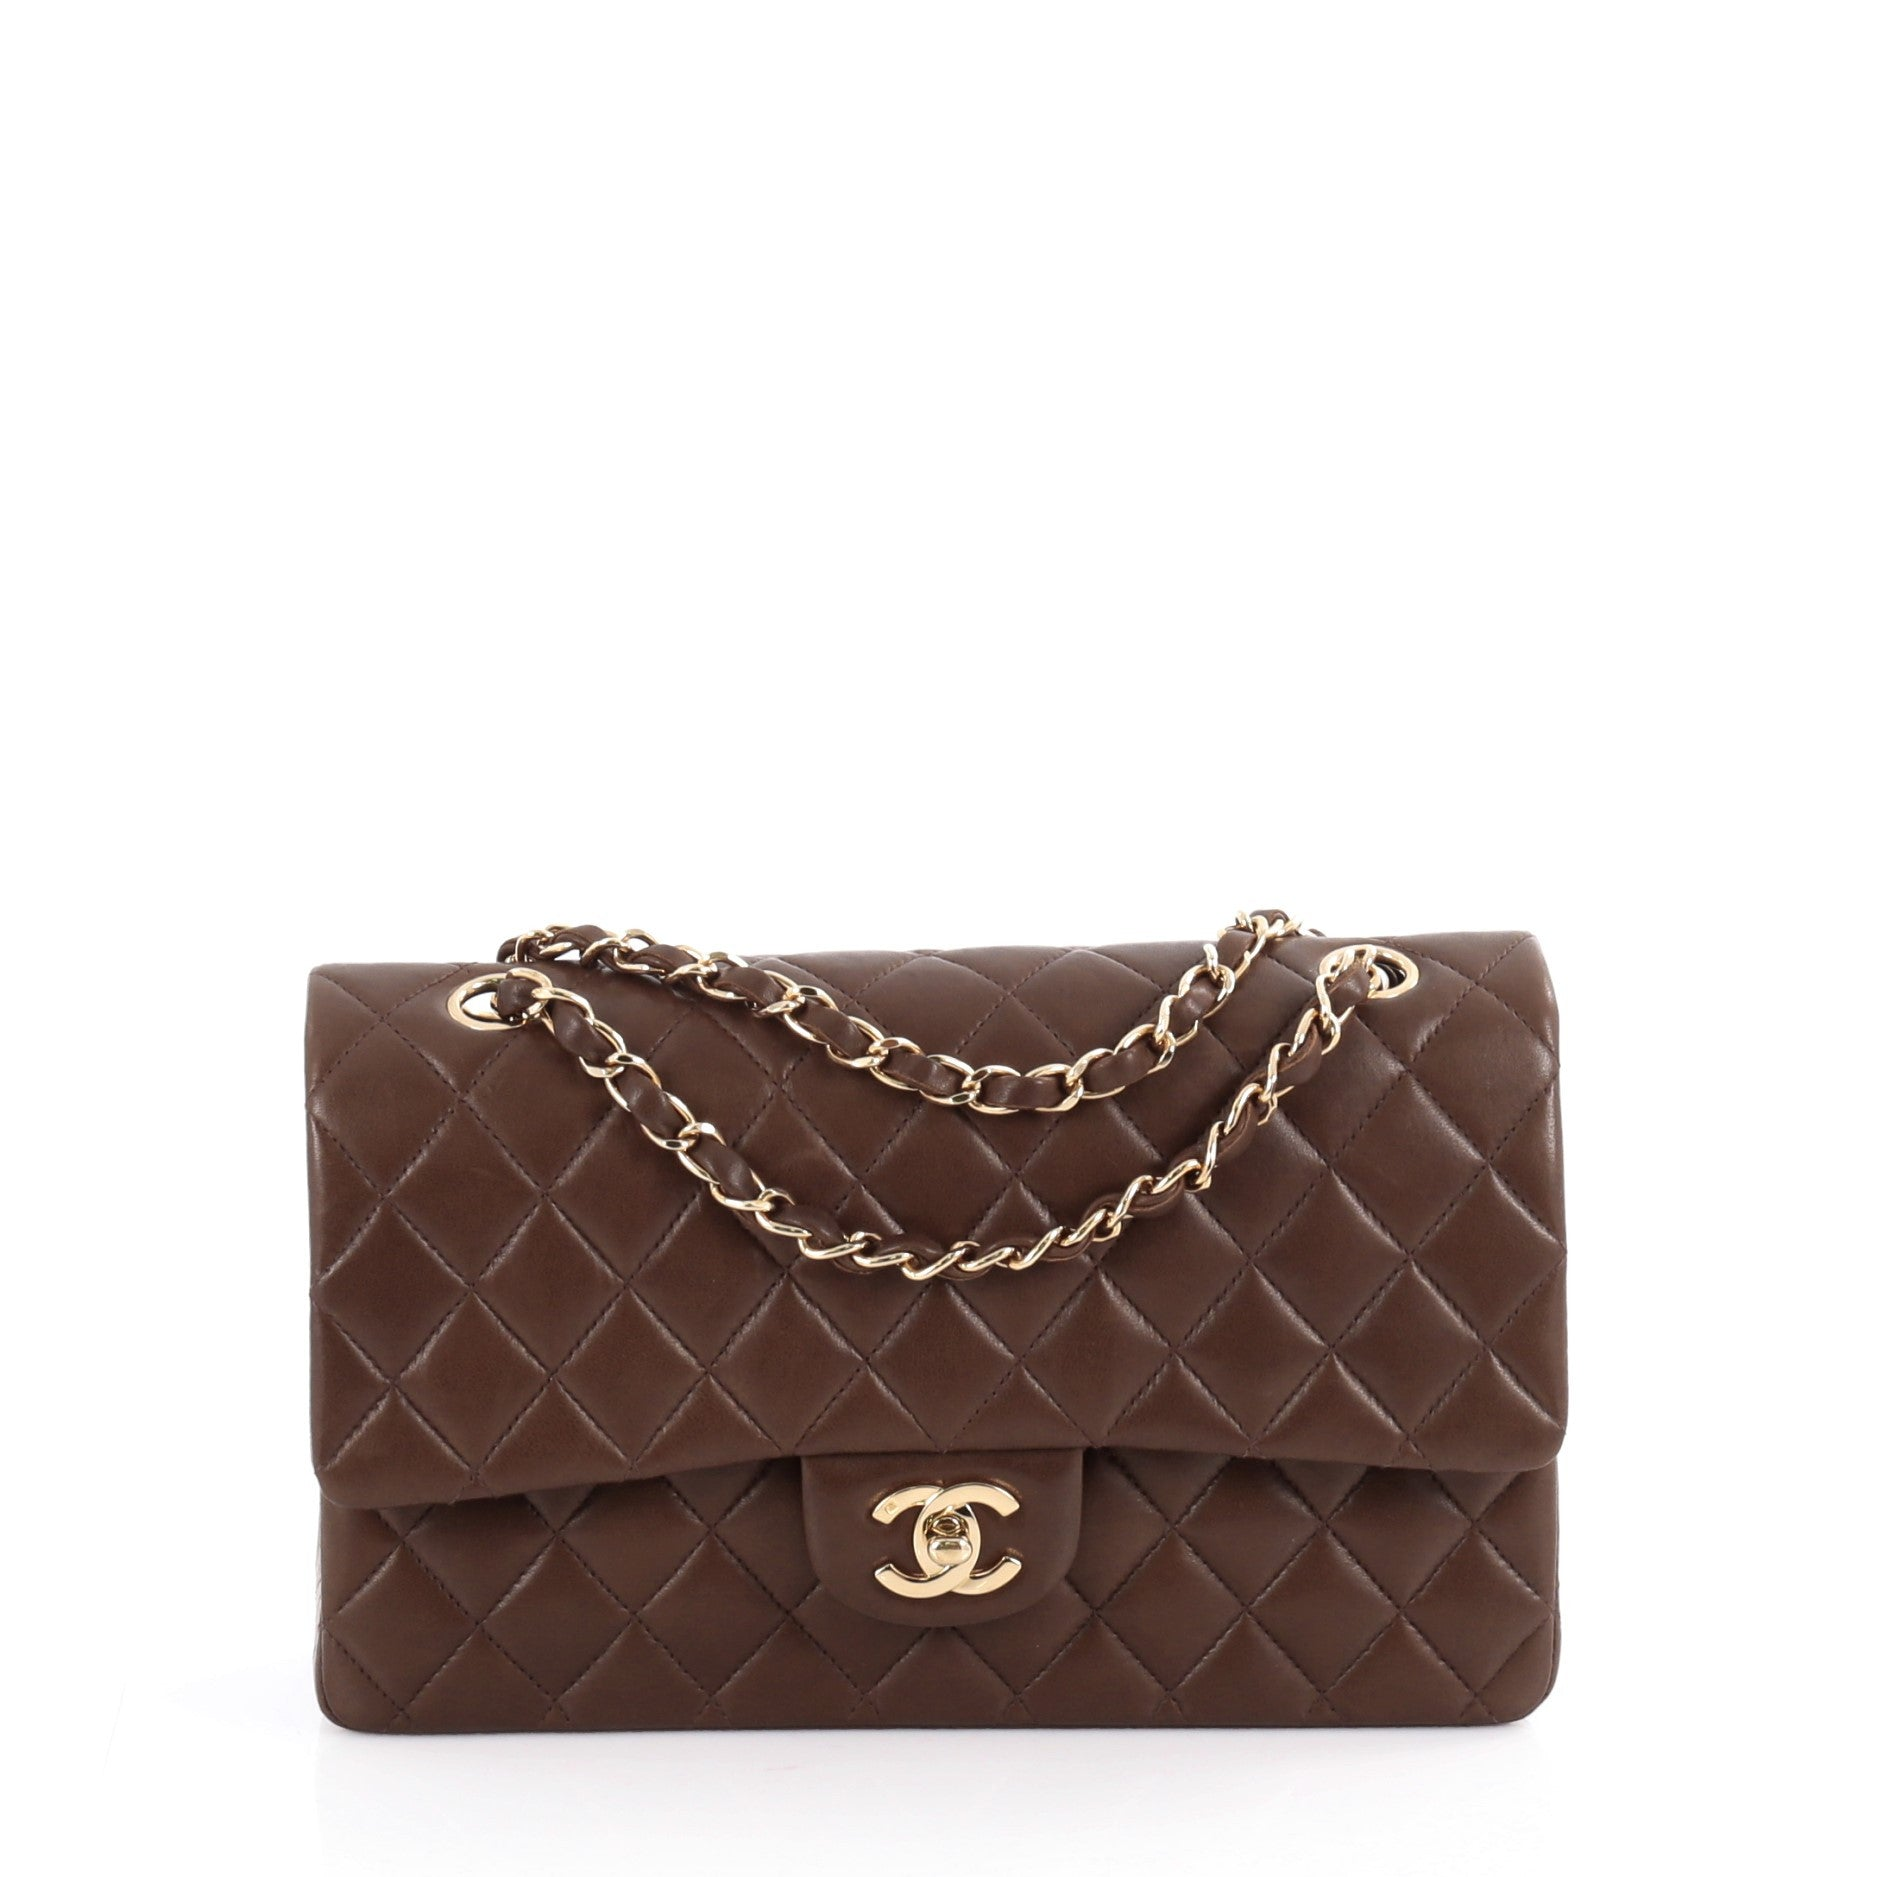 9f6fb72d6c29 20923-01_Chanel_Vintage_Classic_Double_Flap_Bag_Qu_2D_0003.jpg?v=1499781067